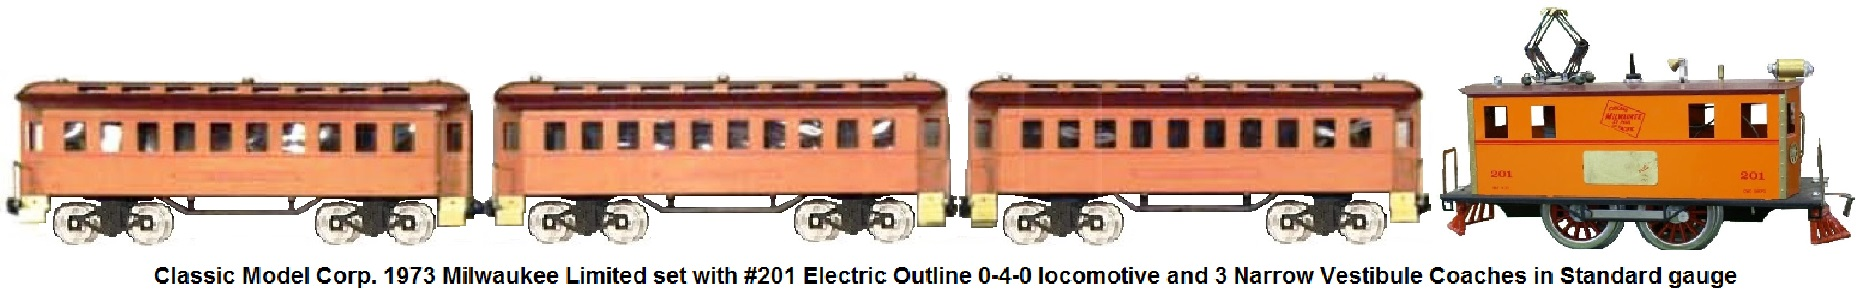 Classic Model Corp. Standard gauge Milwaukee Limited set with #201 Box Cab 0-4-0 electric outline locomotive and three narrow vestibule coaches made in 1973